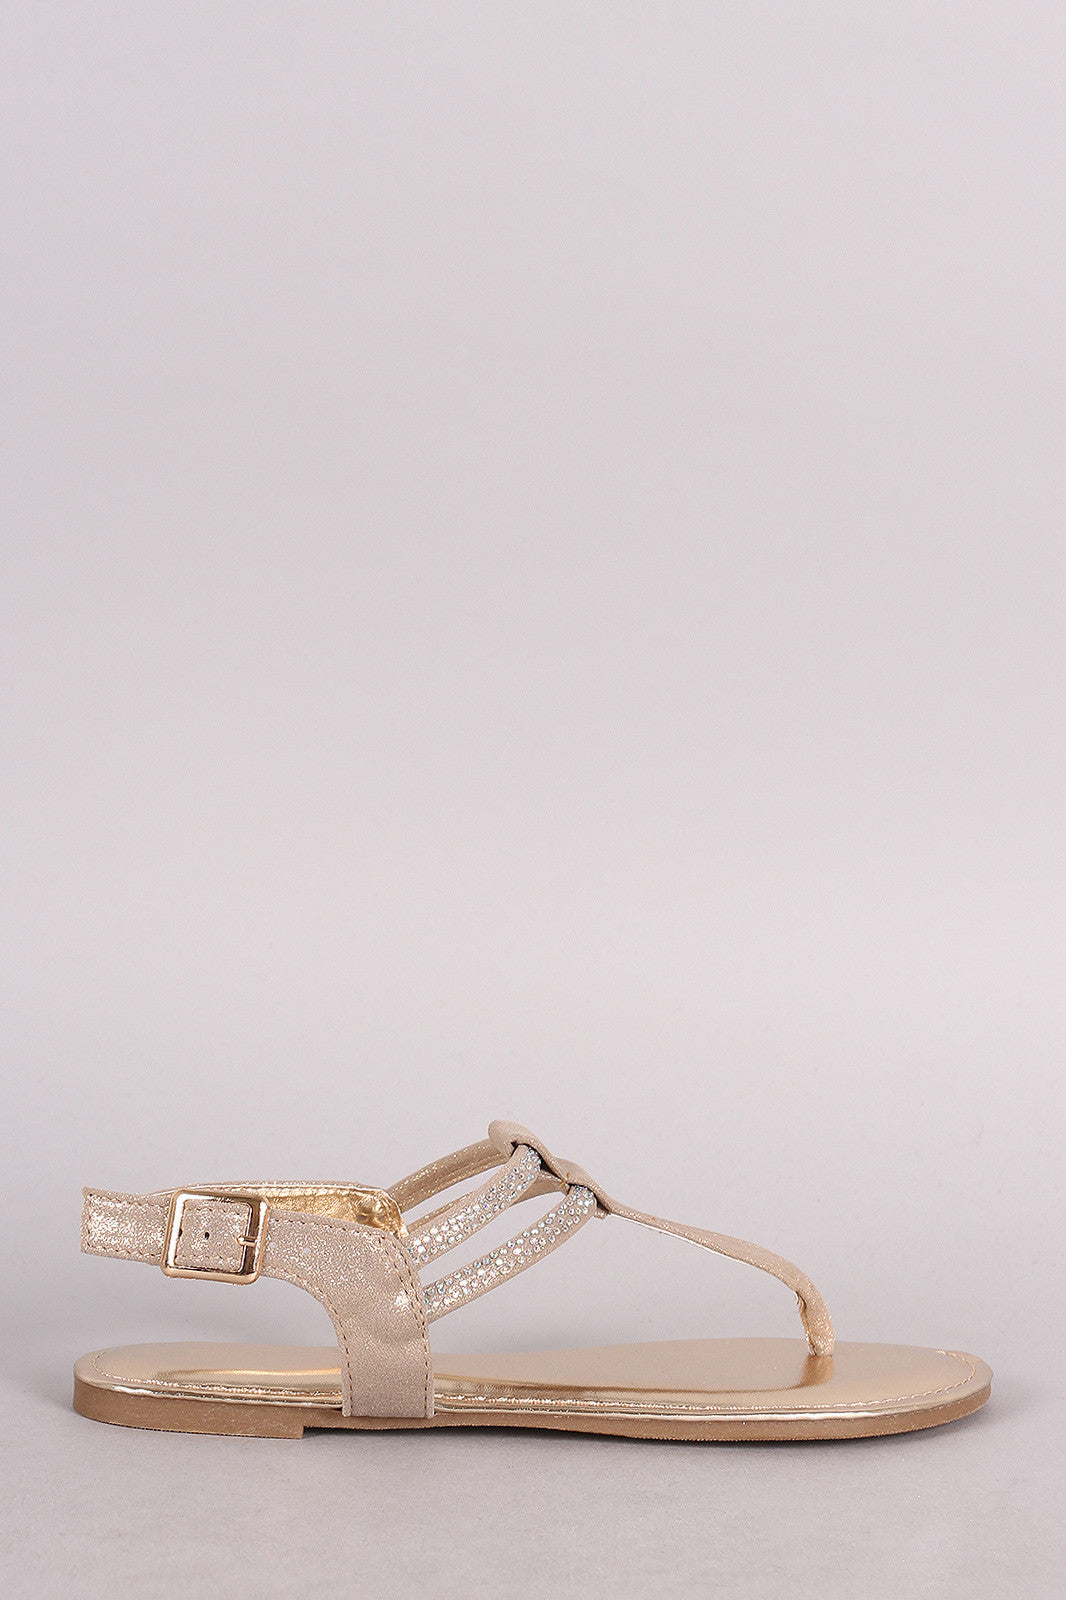 Bamboo Iridescent Glitter Rhinestone T-Strap Thong Flat - Thick 'N' Curvy Shop - 2